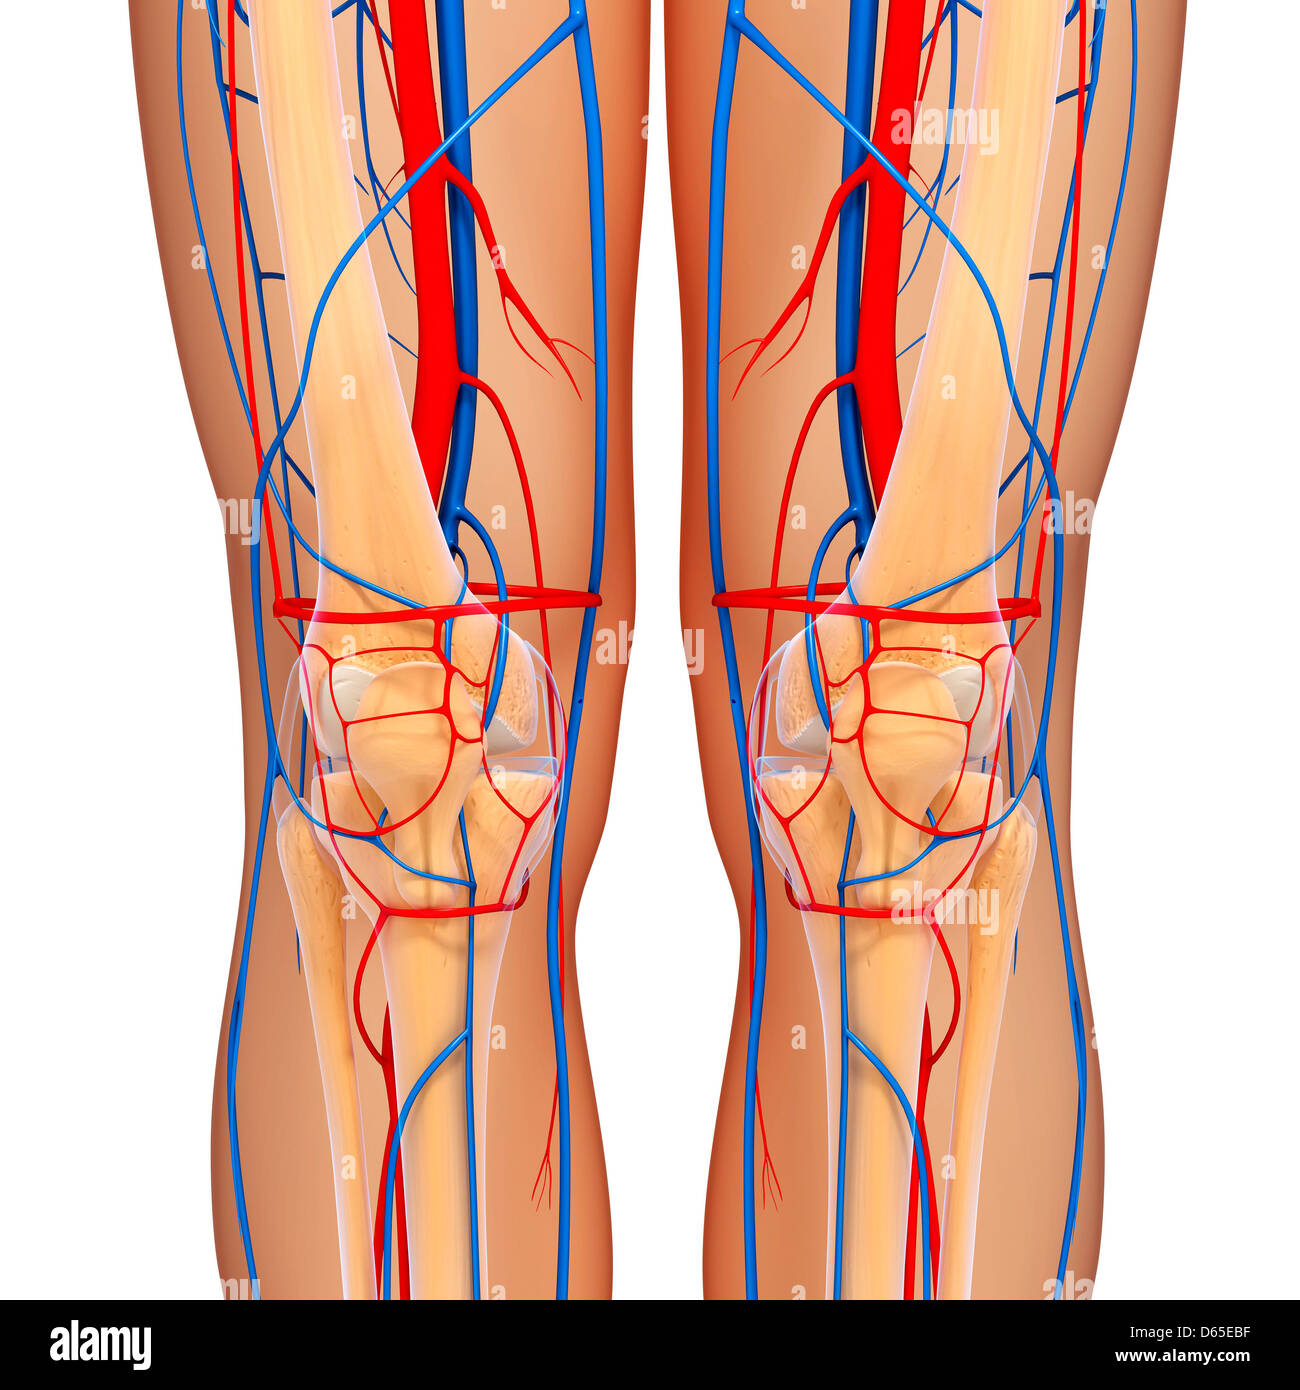 Knee anatomy, artwork Stock Photo: 55440099 - Alamy